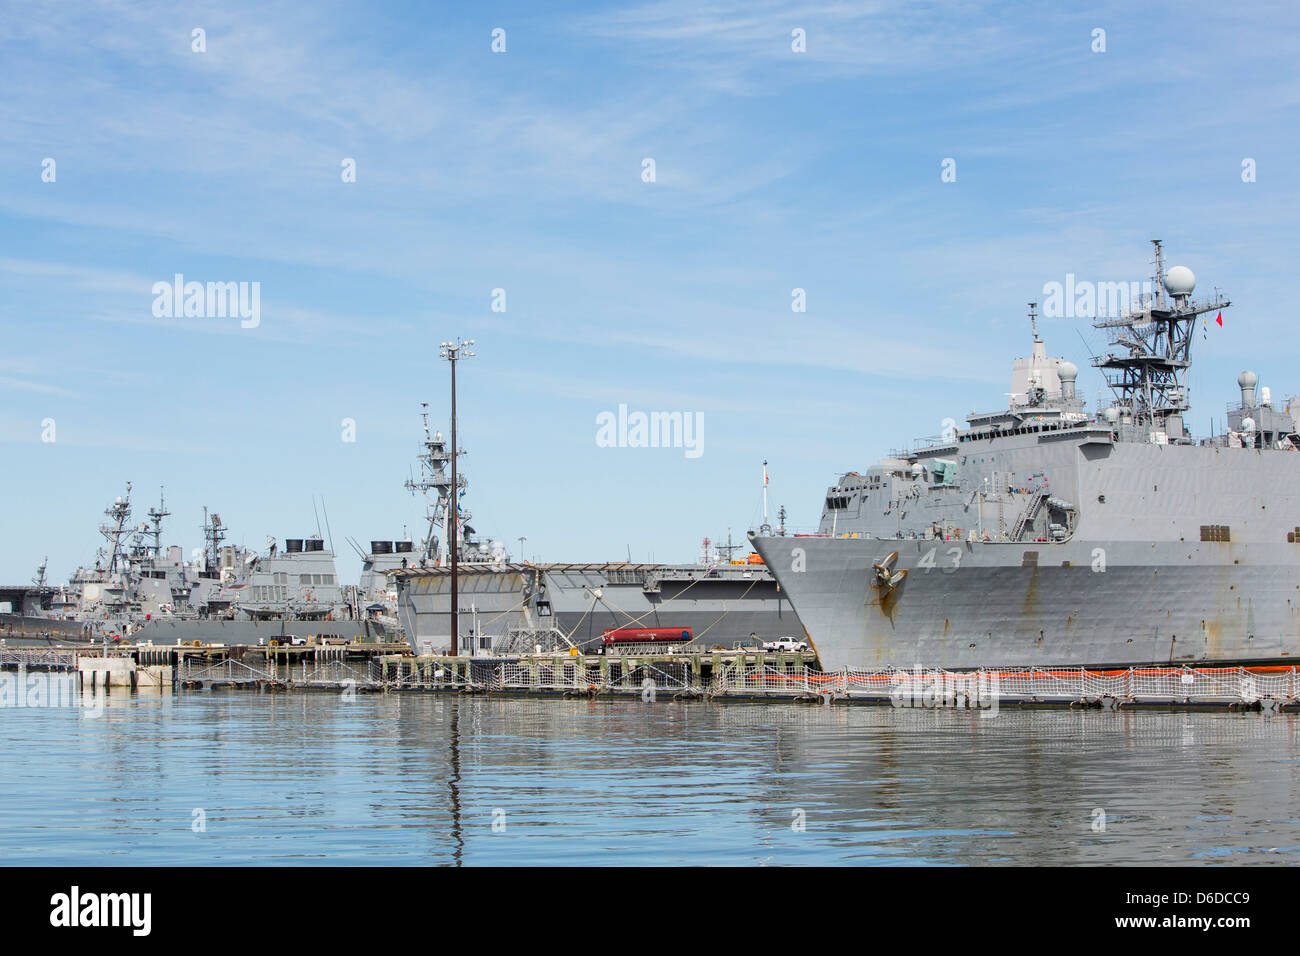 United States Navy ships in port at Naval Station Norfolk. - Stock Image